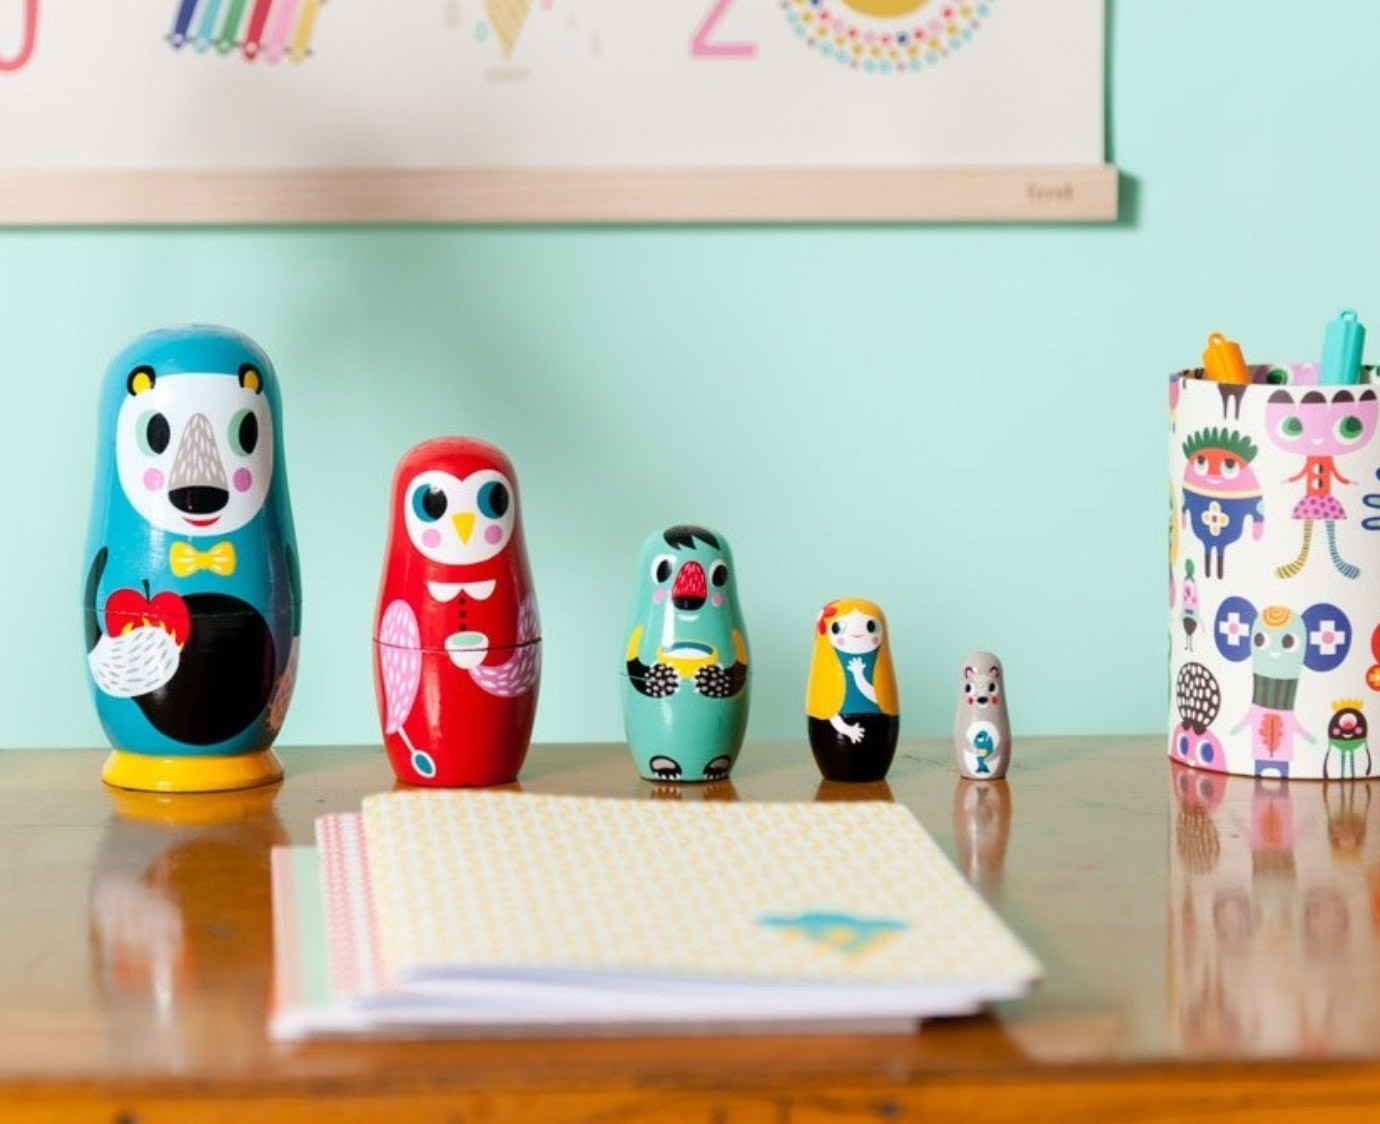 Nesting dolls 'In the woods' 3